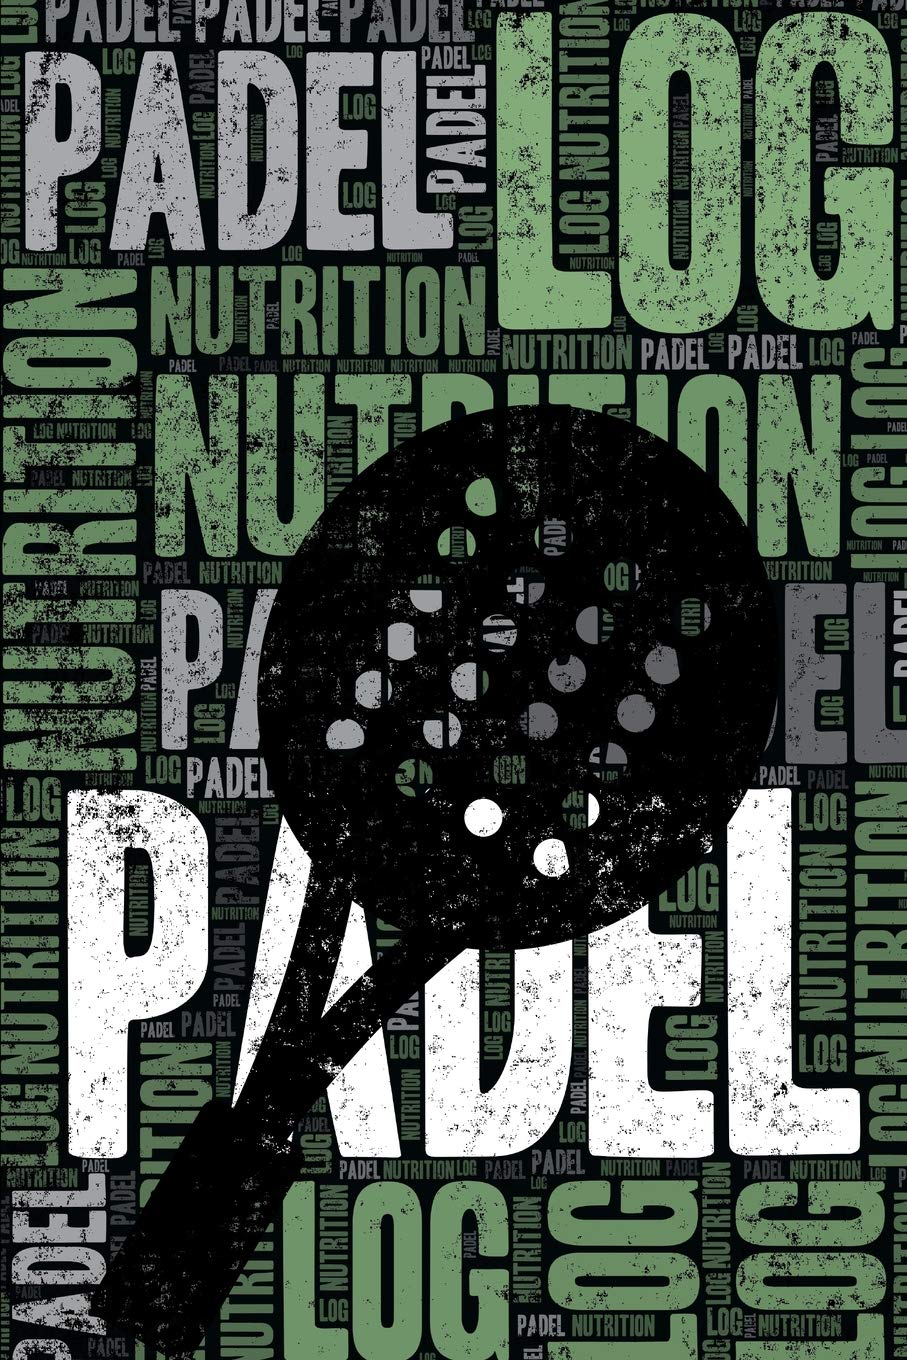 Padel Nutrition Log and Diary: Padel Nutrition and Diet Training ...